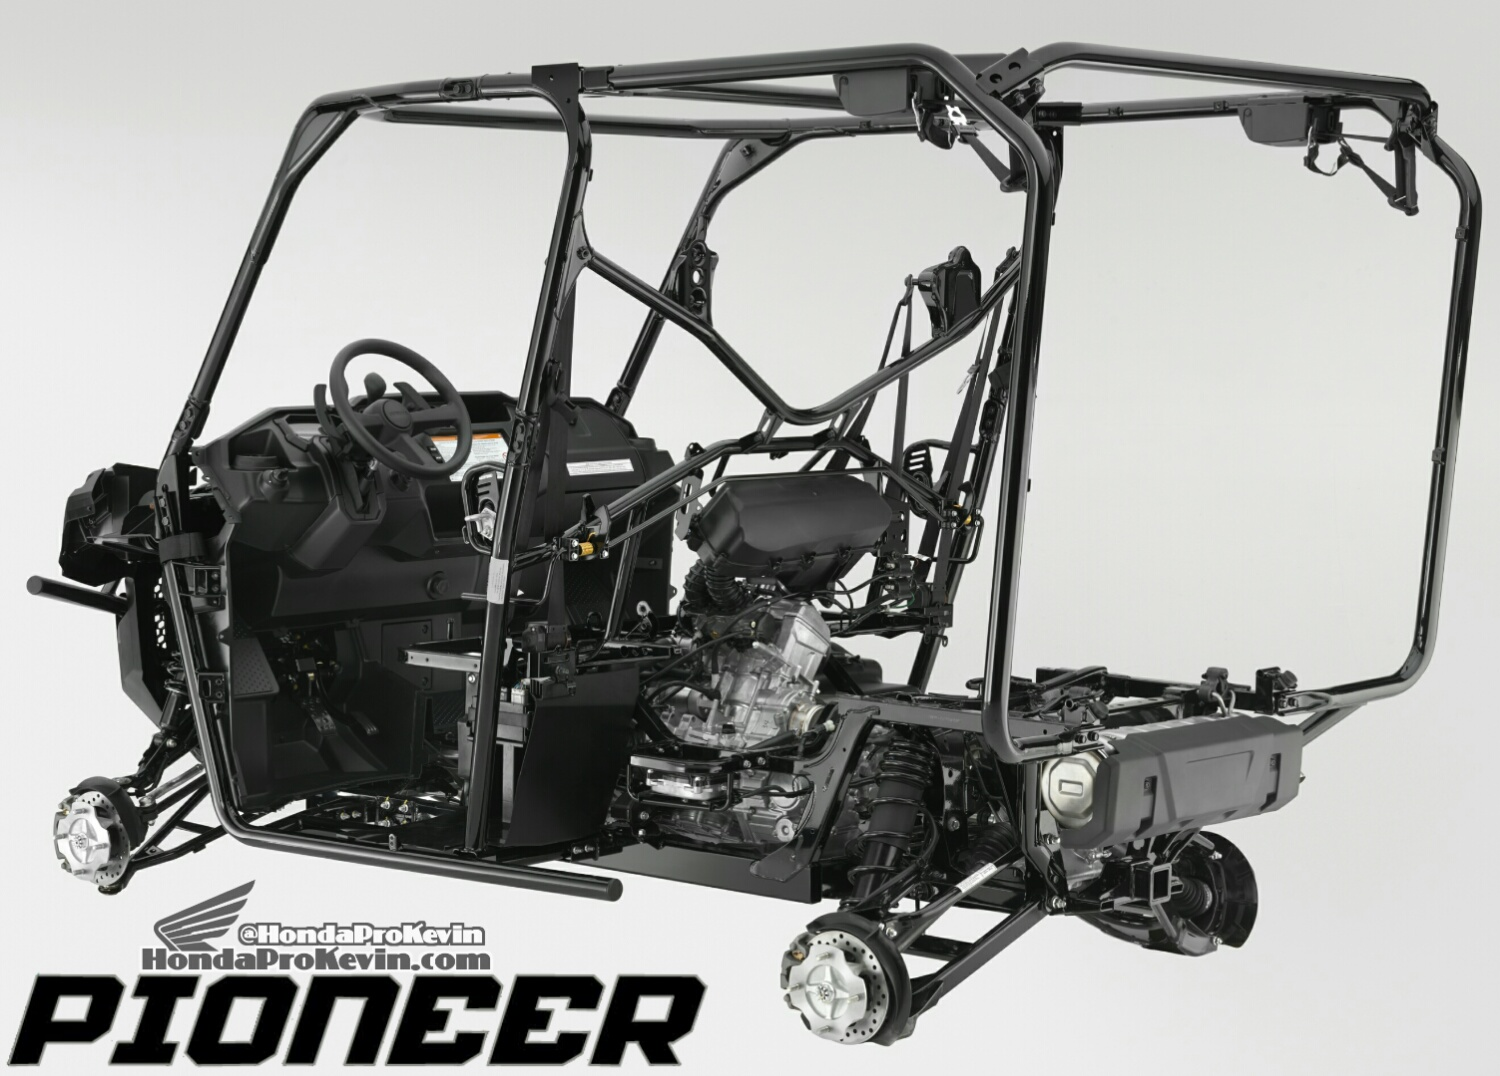 Detailed 2016 Honda Pioneer 1000 & 1000-5 Frame, Suspension, Engine Pictures - Photo Gallery - SxS / UTV / Side by Side ATV - SXS1000 - SXS1000M3 - SXS1000M5